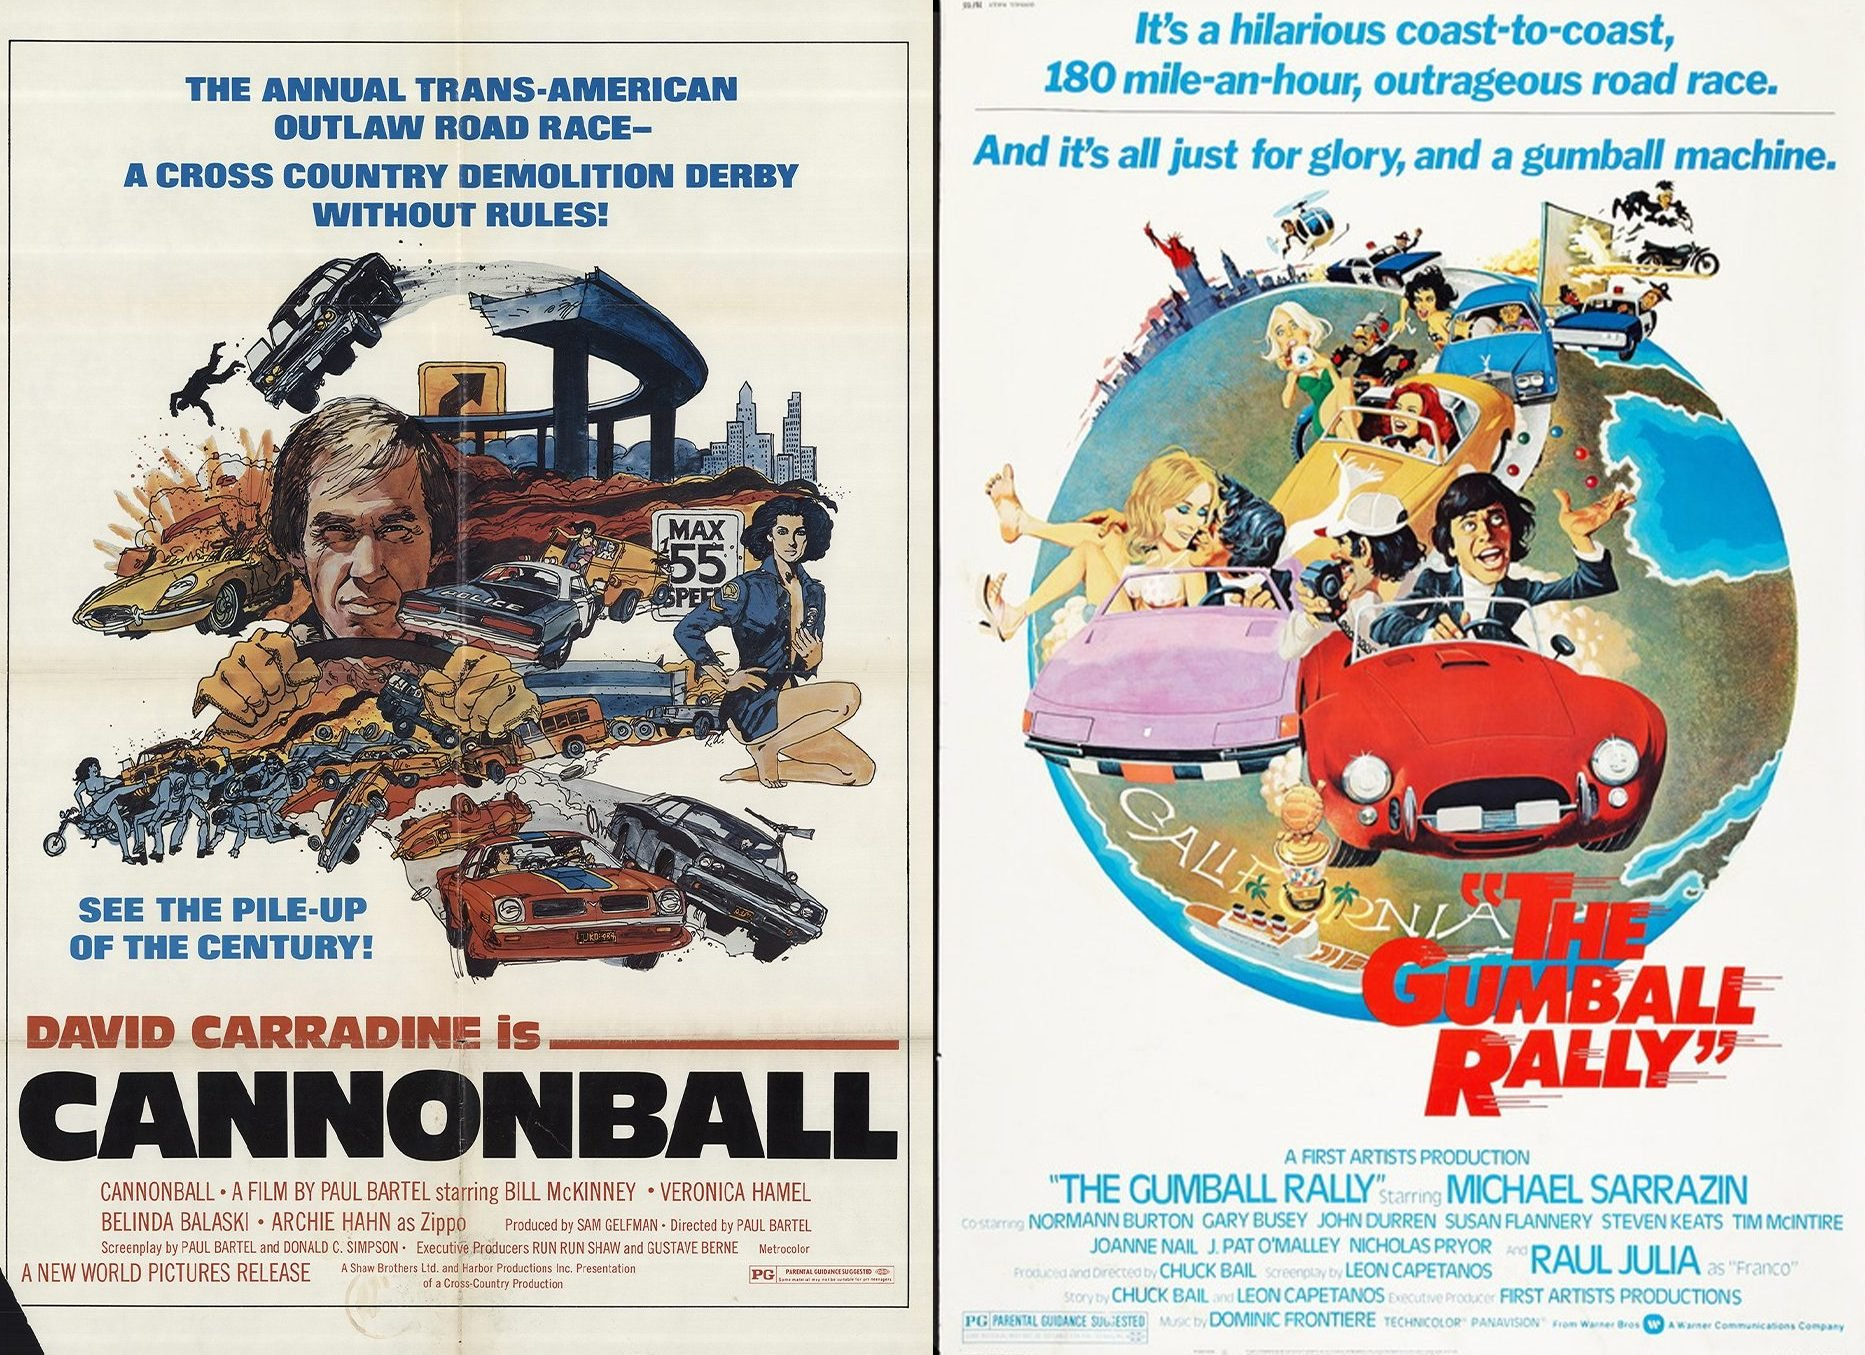 Cannonball the Gumball Rally e1627030779557 20 Fun Facts You Didn't Know About The Cannonball Run Films